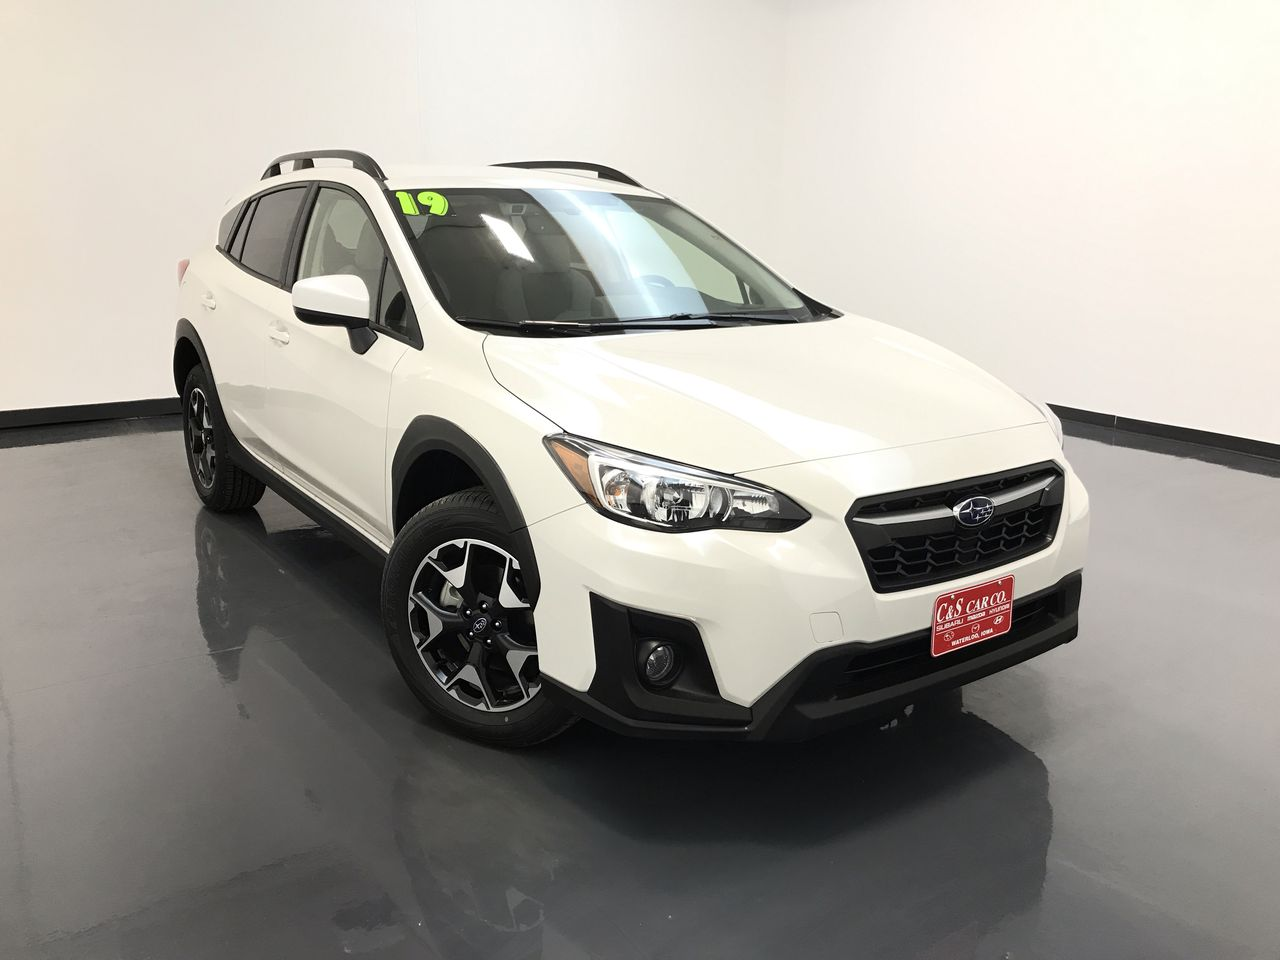 2019 Subaru Crosstrek 2.0i Premium w/Eyesight  - SC8208  - C & S Car Company